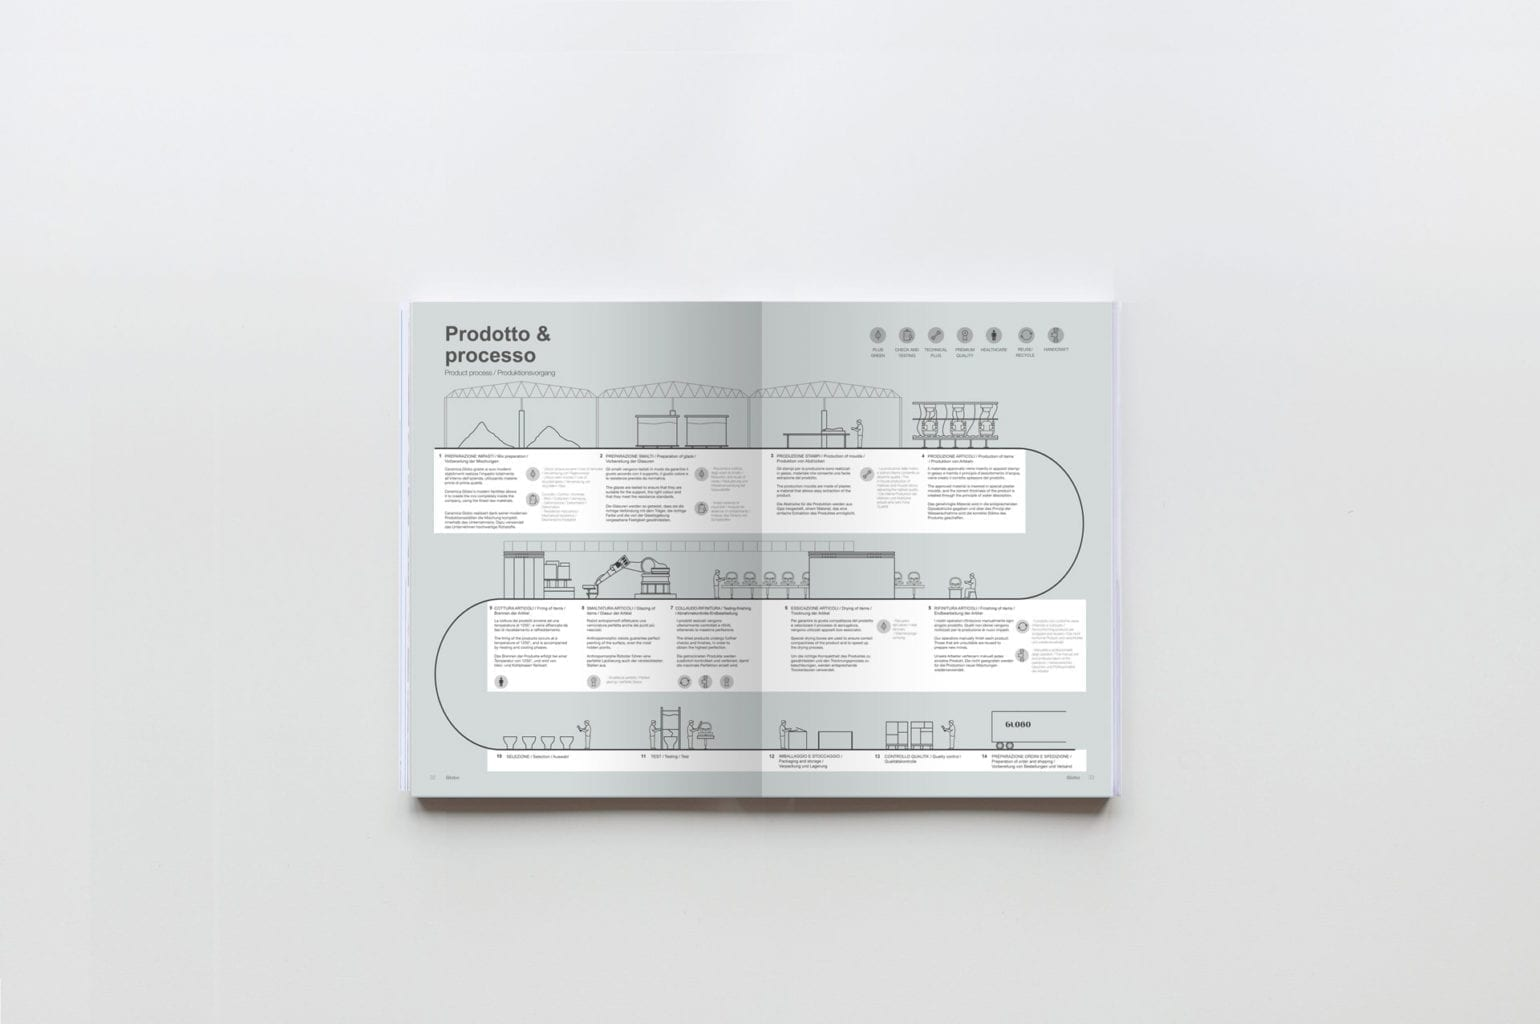 domenico_orefice_design_studio_graphic_branding_globo_general_catalogue_09